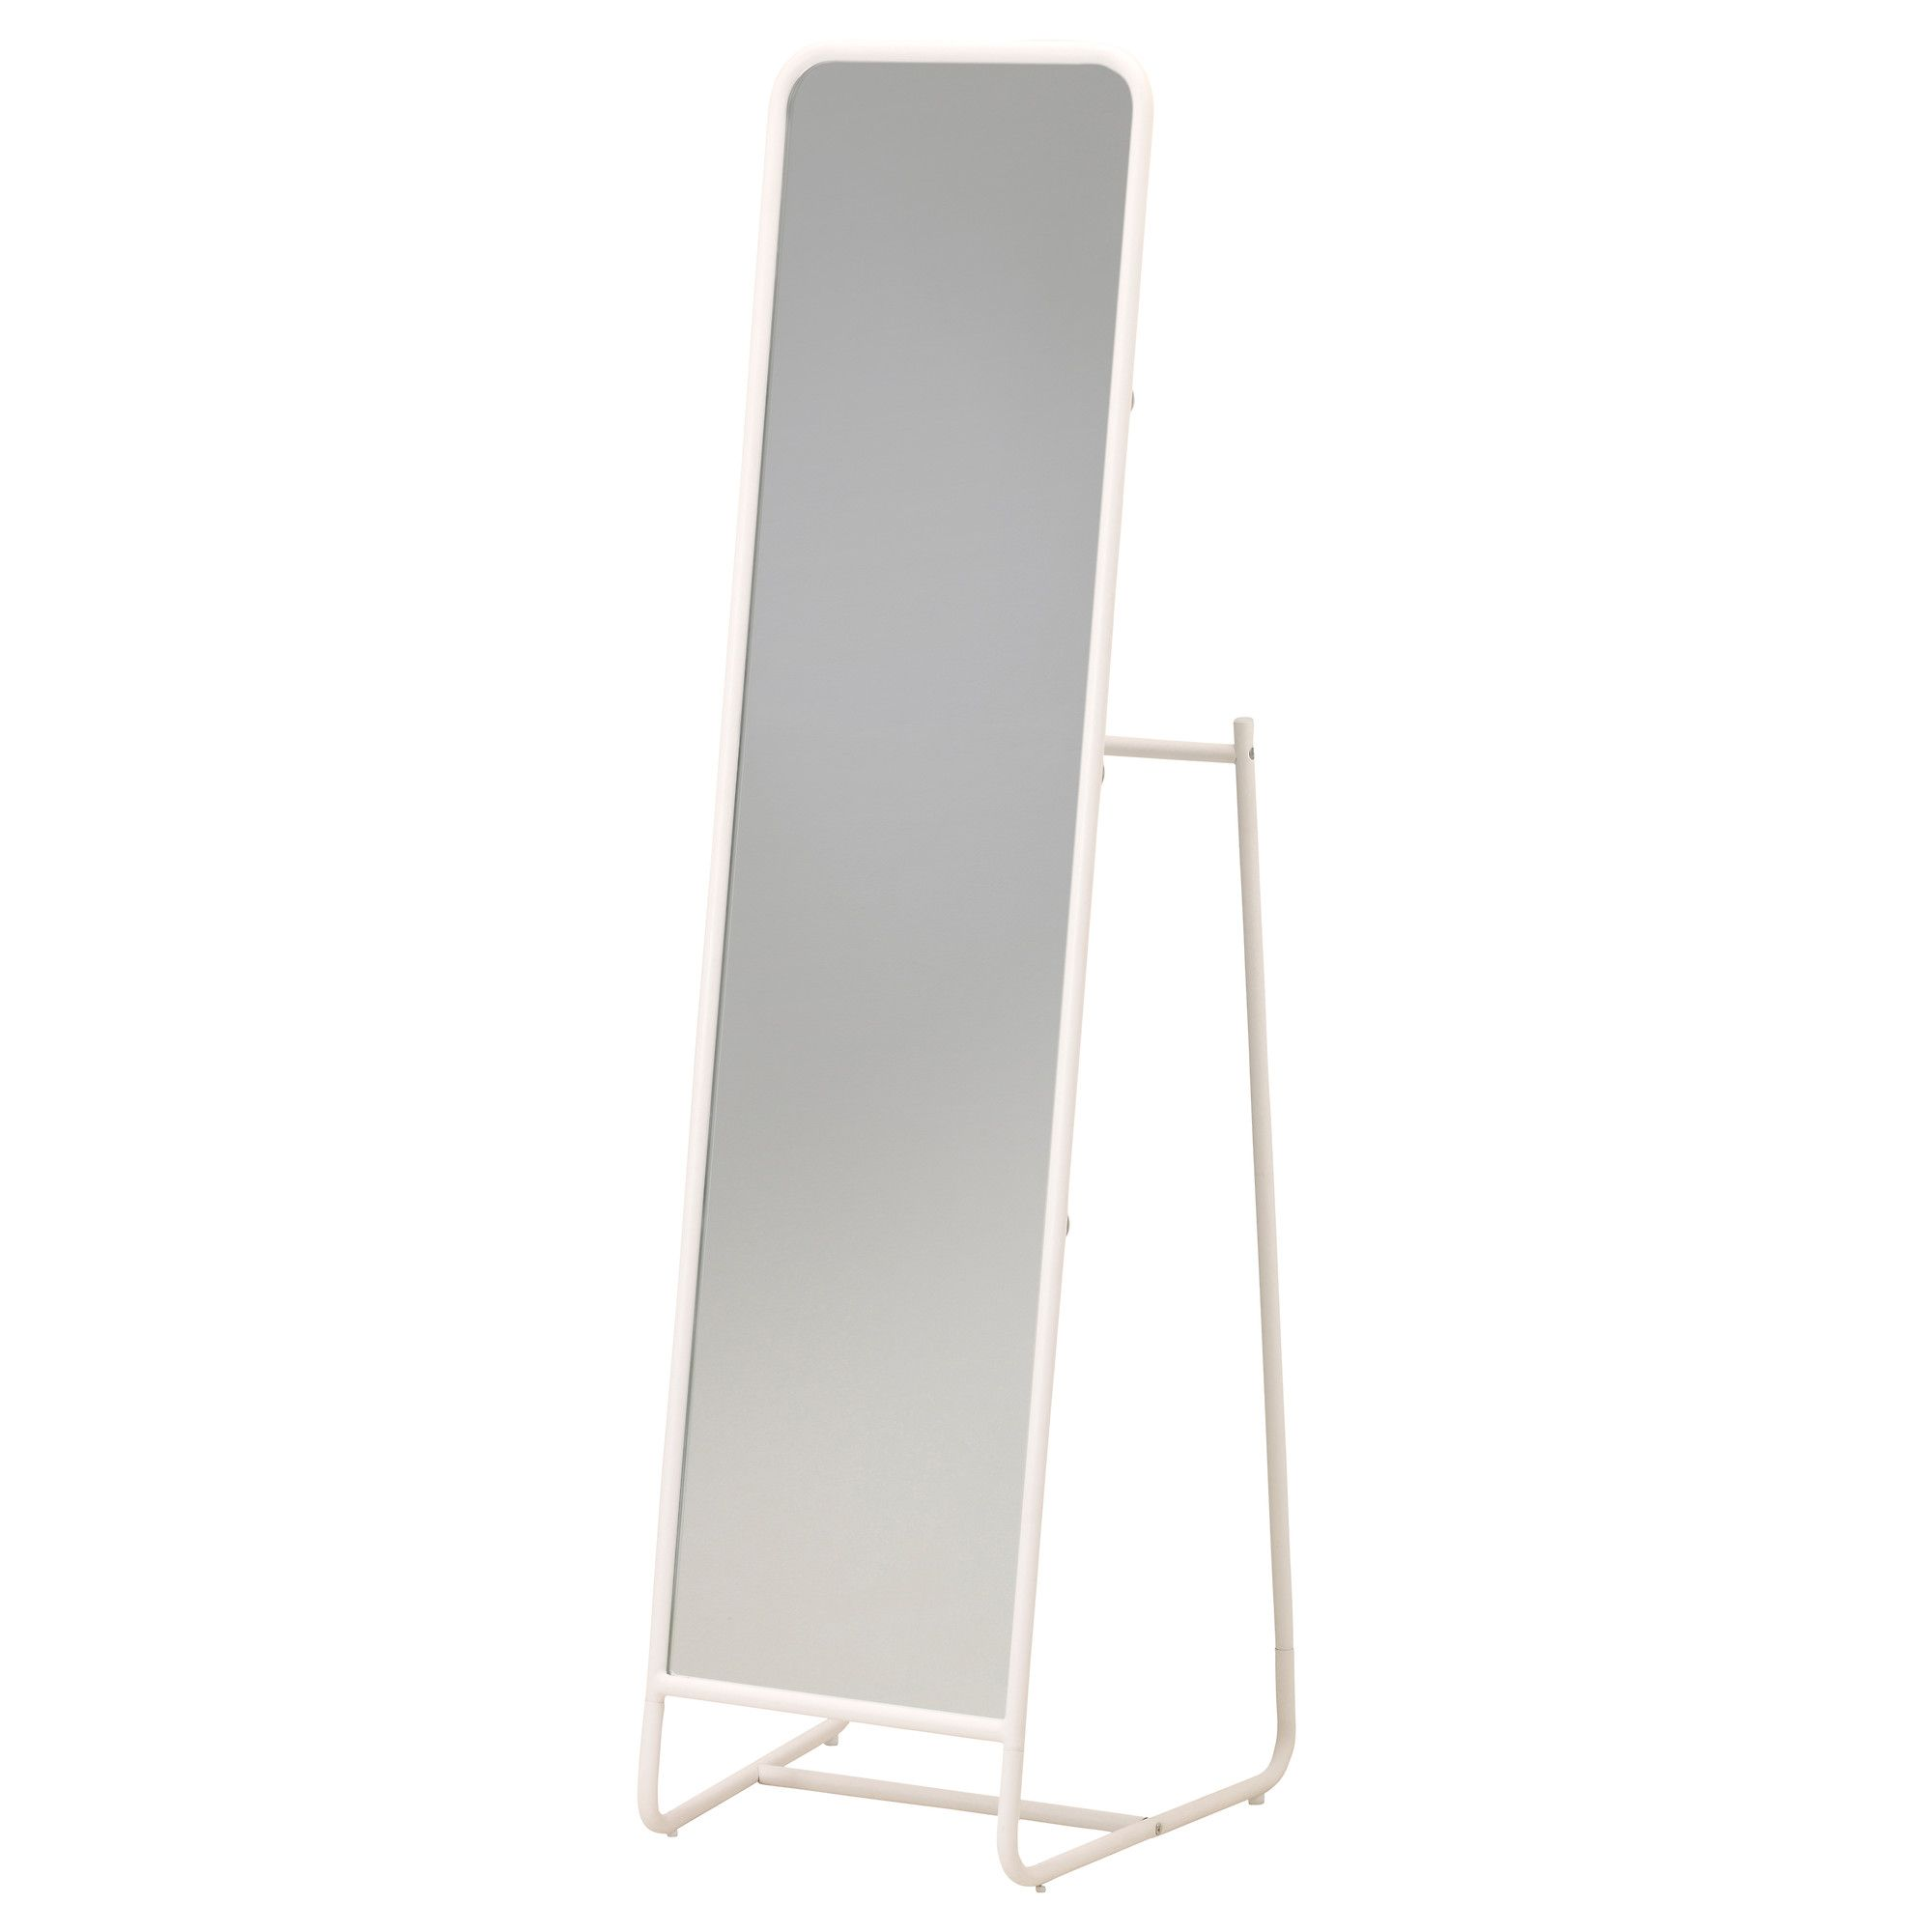 Ikea Teppich Gulört The Knapper Floor Mirror Has A Hidden Secret Hiding Behind The